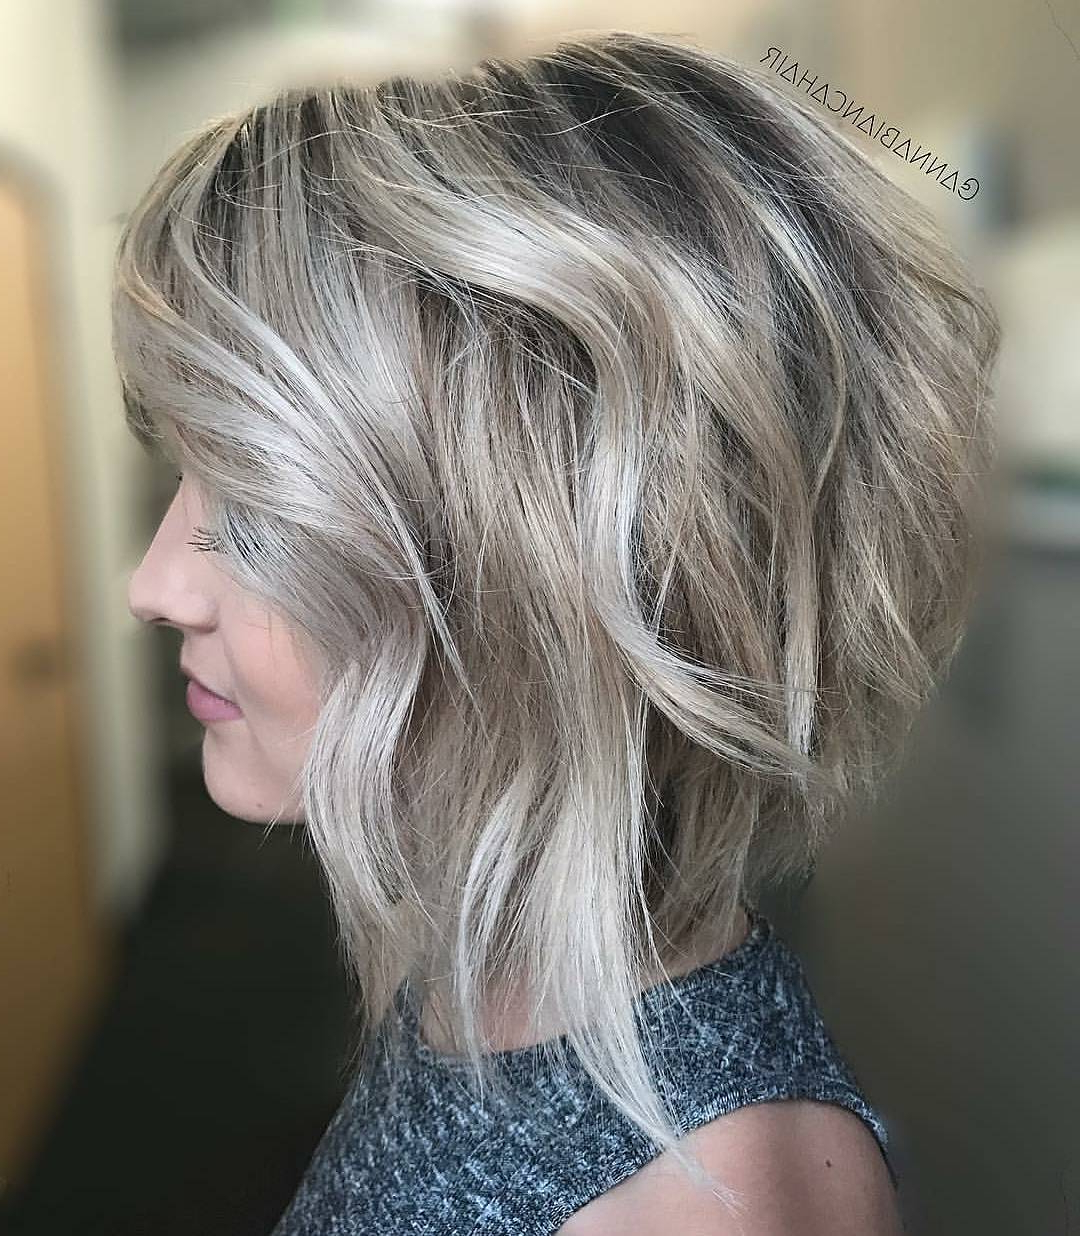 Well Known Straight Tousled Blonde Balayage Bob Hairstyles For 10 Stylish Medium Bob Haircuts For Women – Easy Care Chic Bob Hair (View 18 of 20)